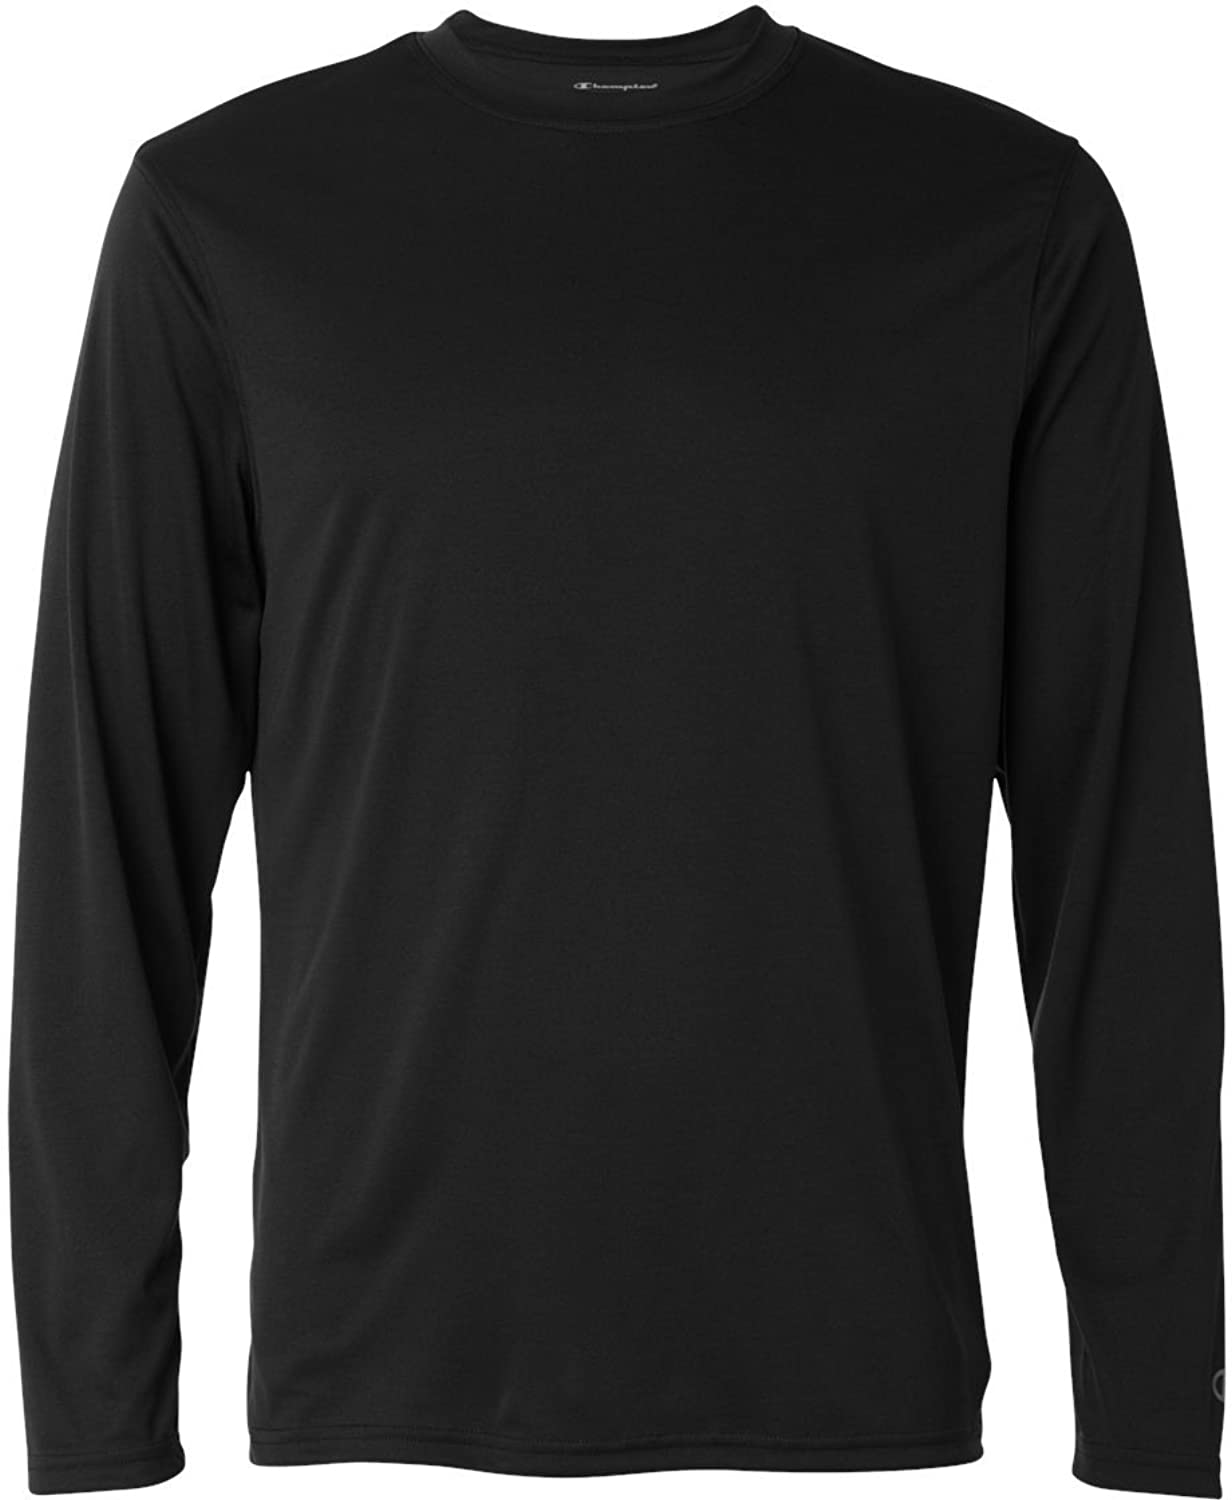 Men S Athletic Long Sleeve Shirts Is Shirt